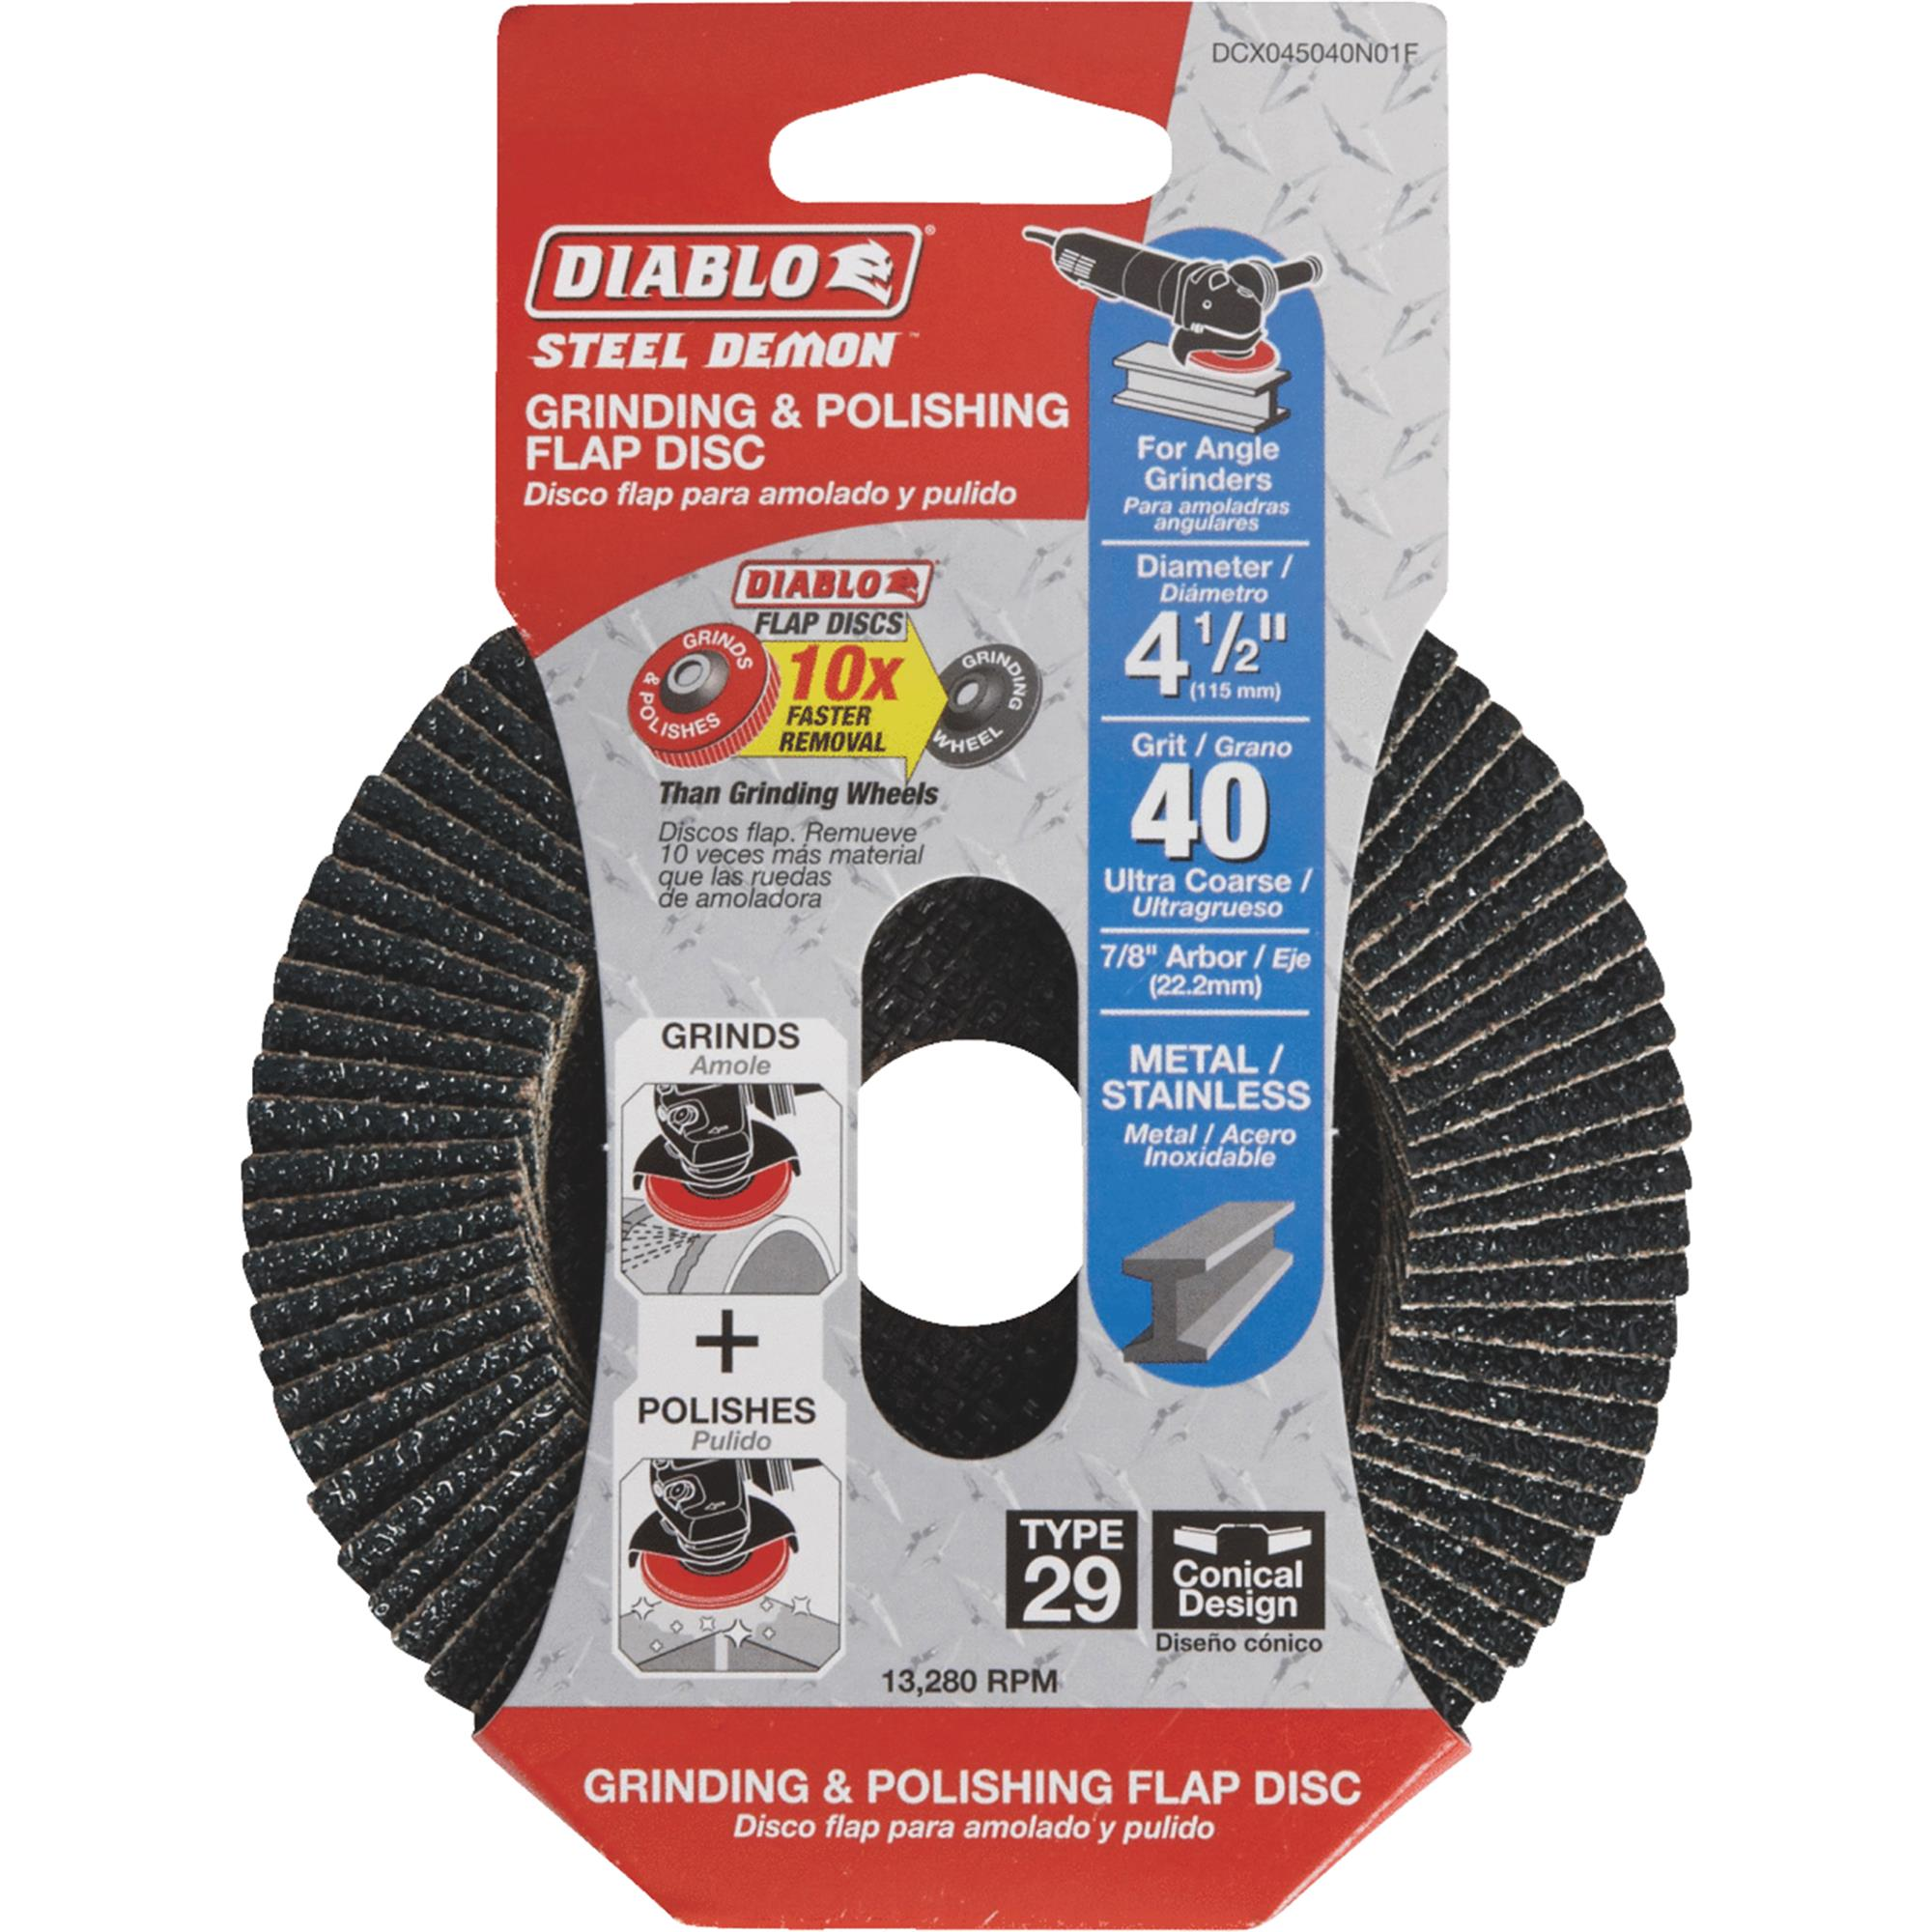 Diablo Type 29 Steel Demon Angle Grinder Flap Disc